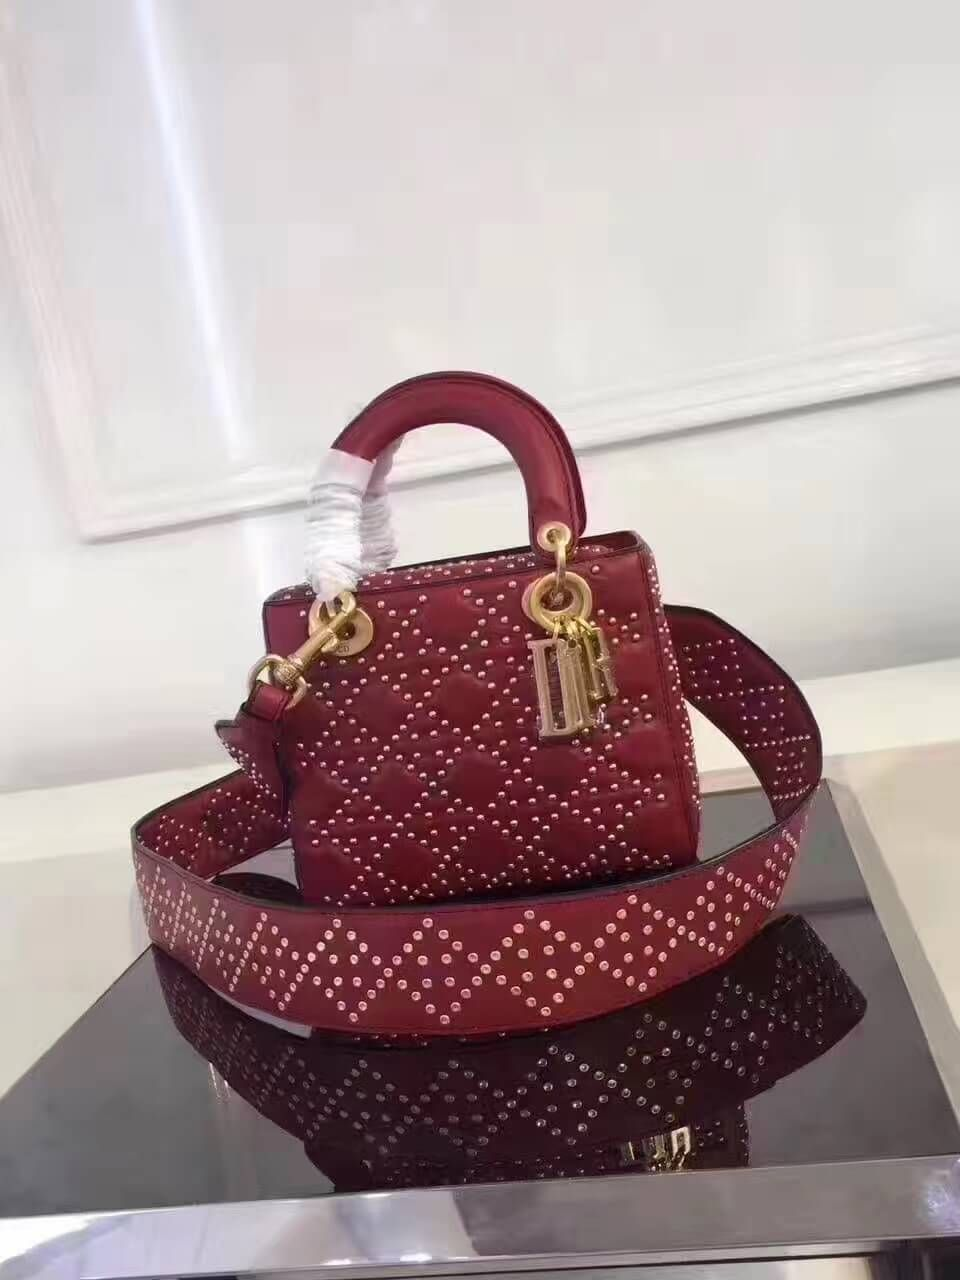 Dior Supple Lady Dior Medium Bag in Red Studded Calfskin 2017  6fb7ac75ee9c9